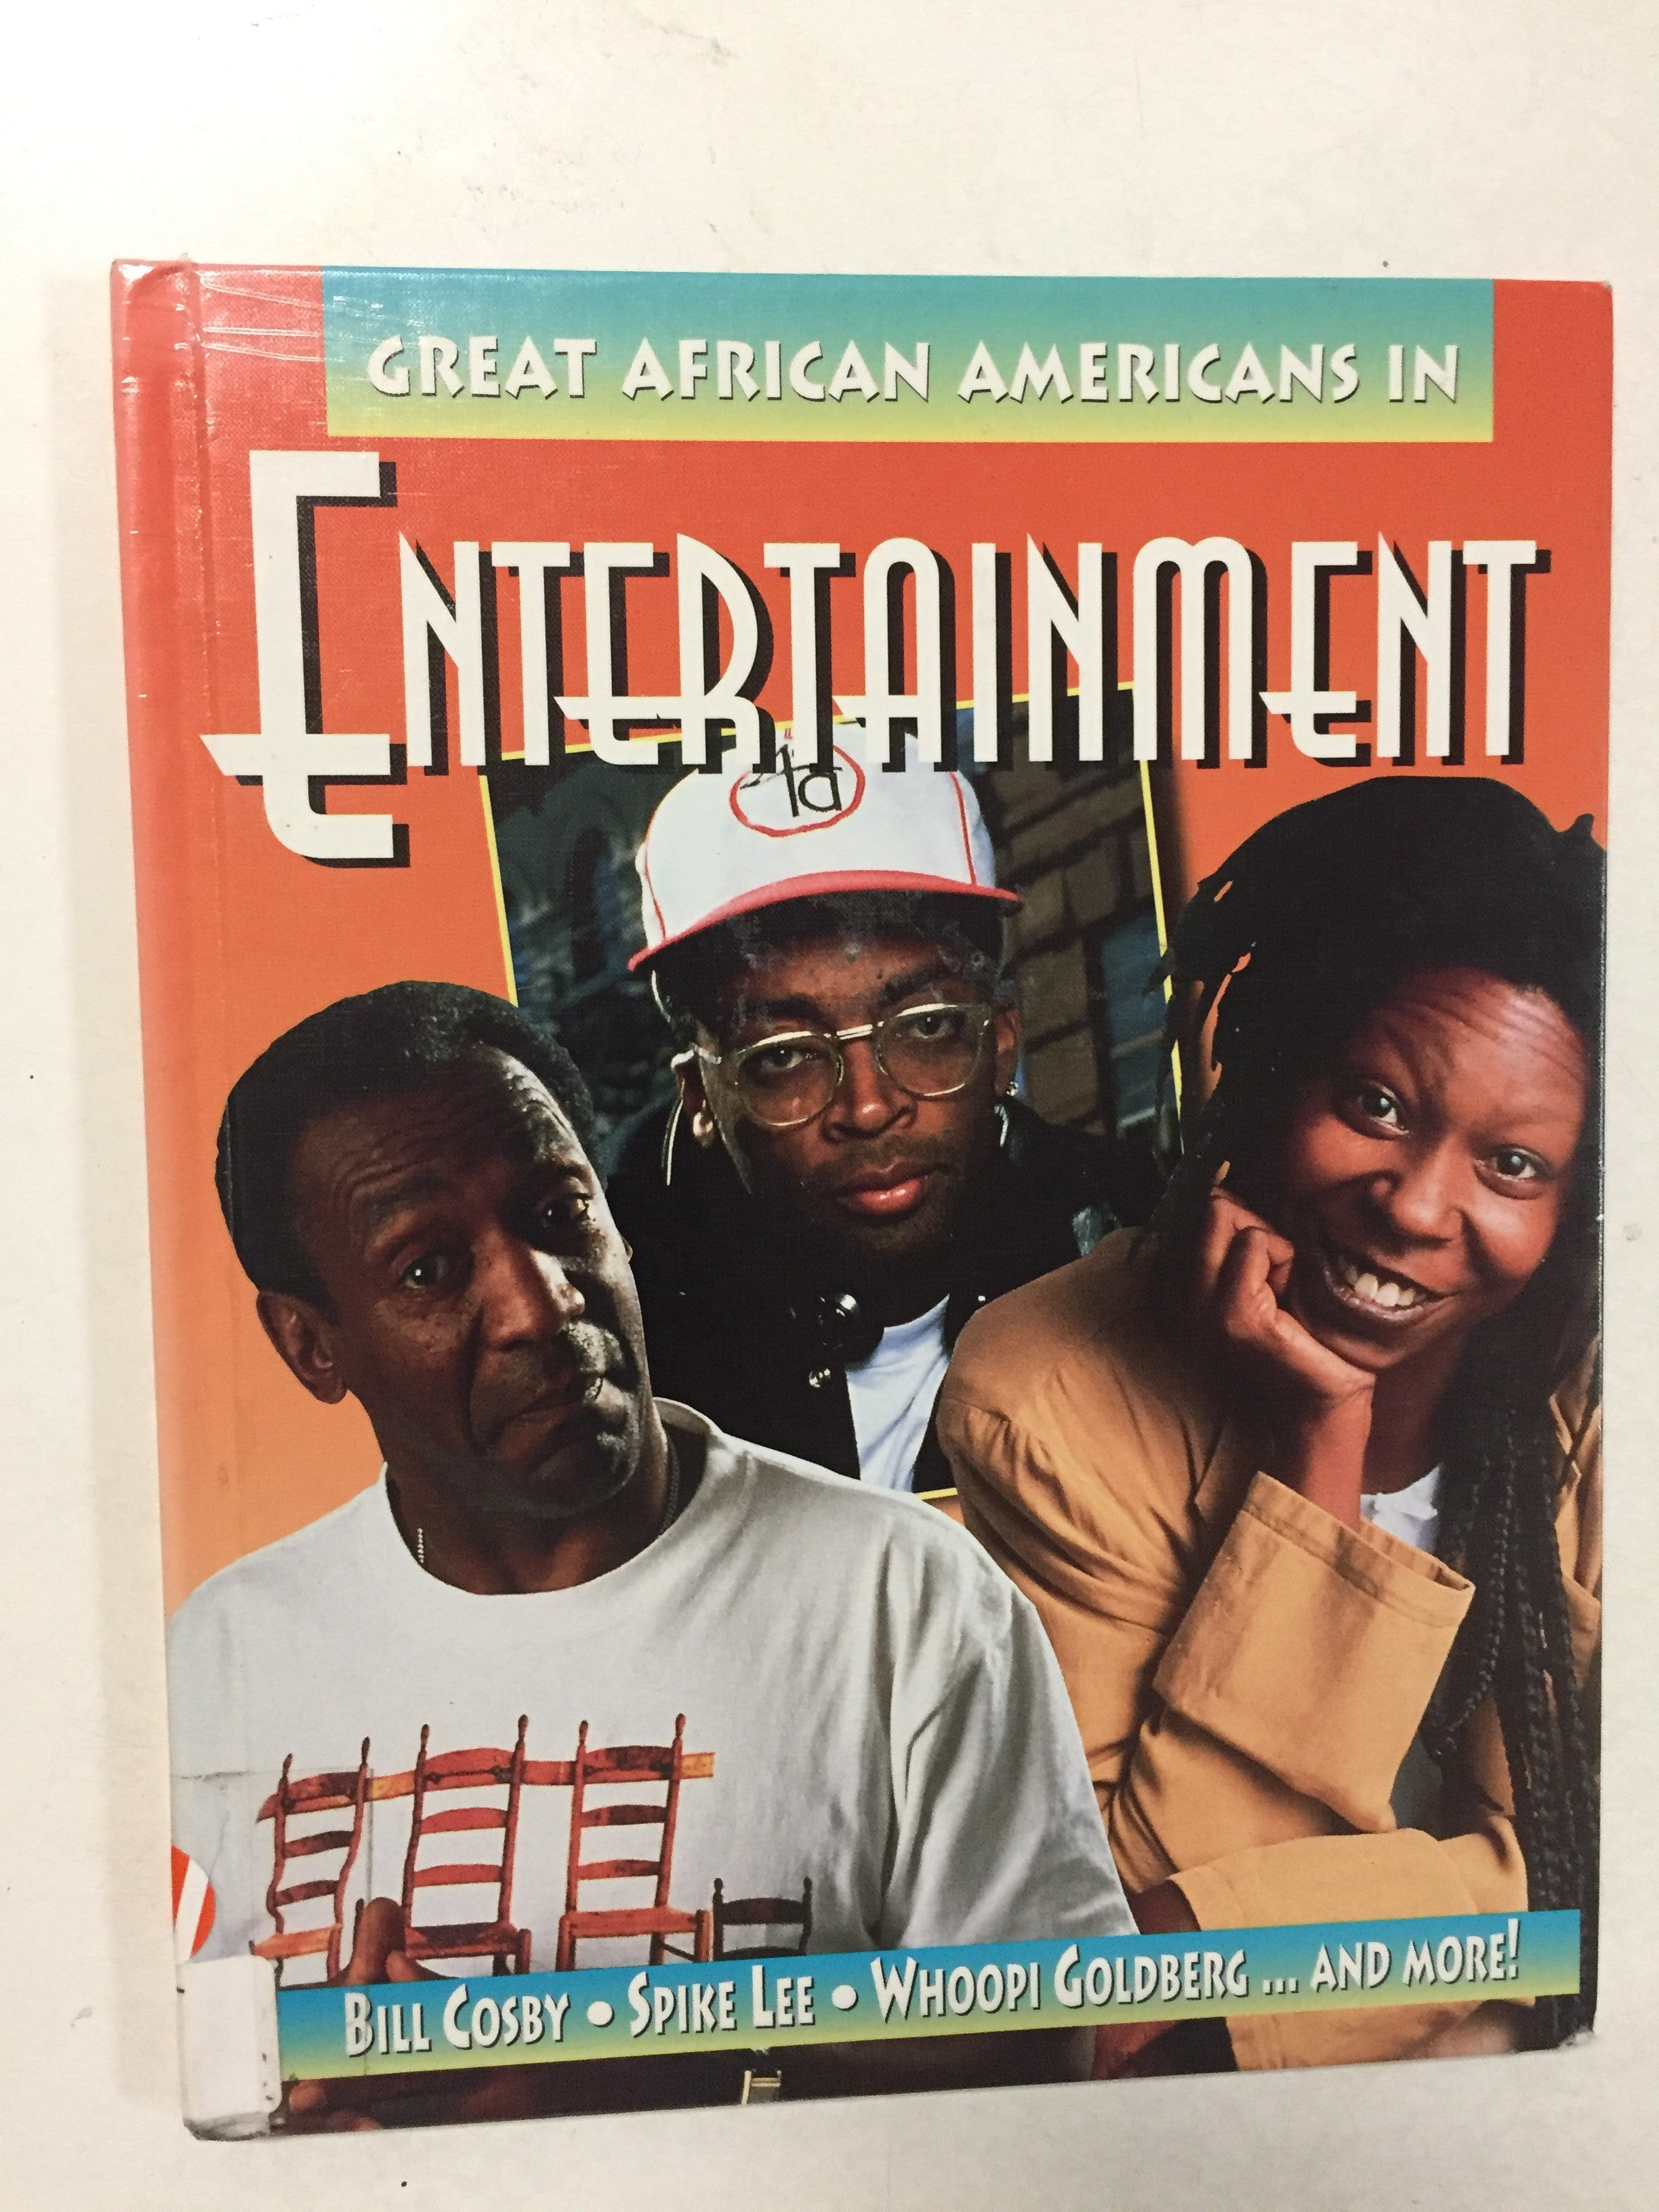 Great African Americans in Entertainment - Slickcatbooks